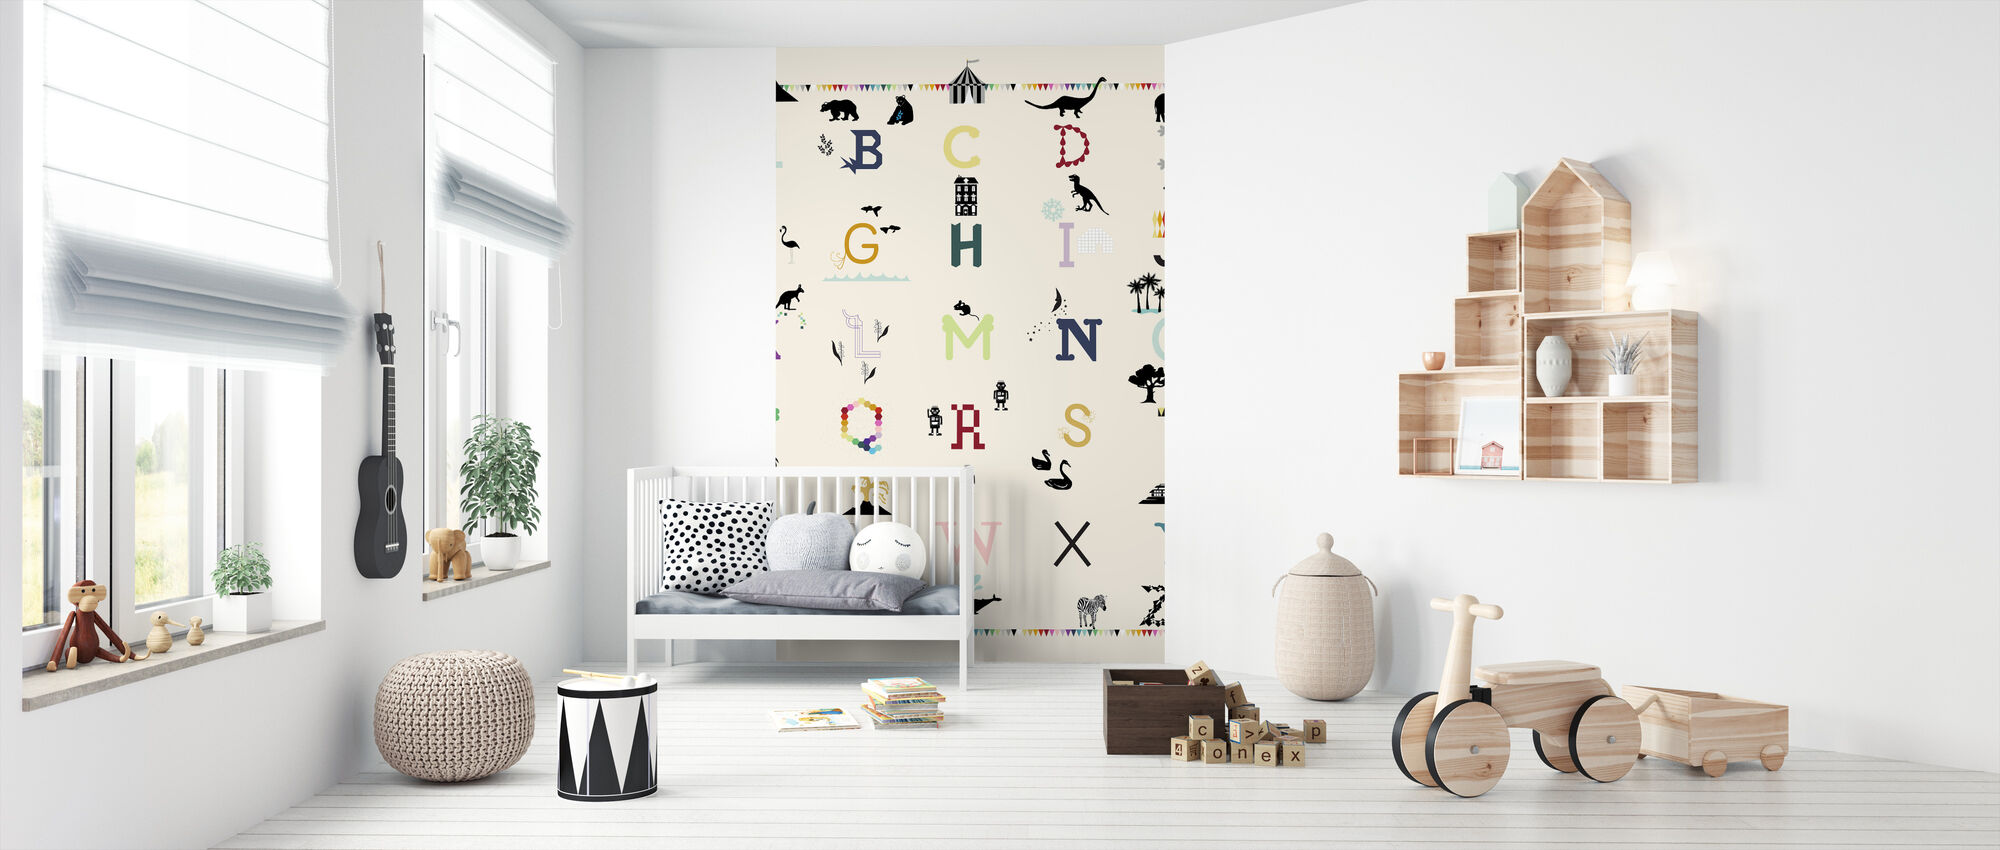 ABC wall - English - Wallpaper - Nursery